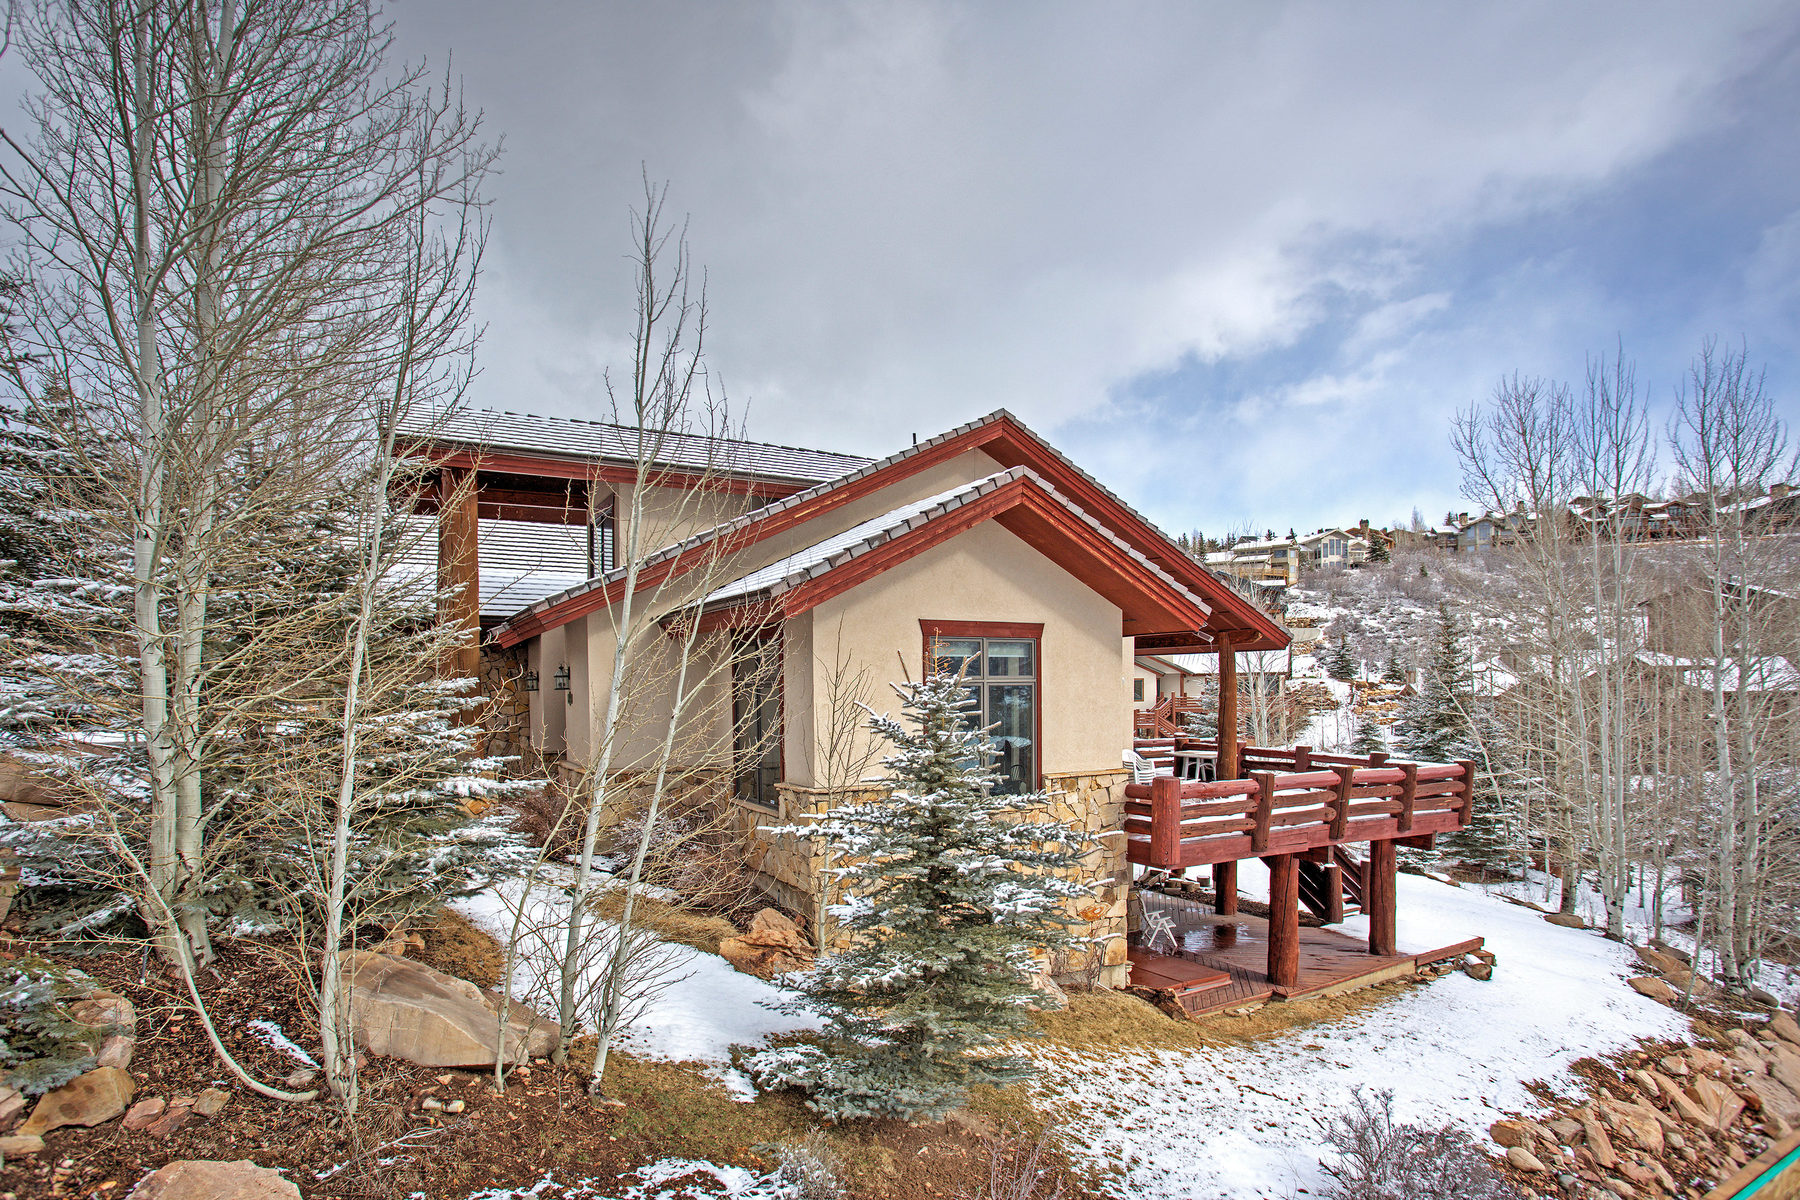 Single Family Home for Sale at Deer Valley Home Minutes from Ski Resort 3180 Solamere Dr Park City, Utah 84060 United States